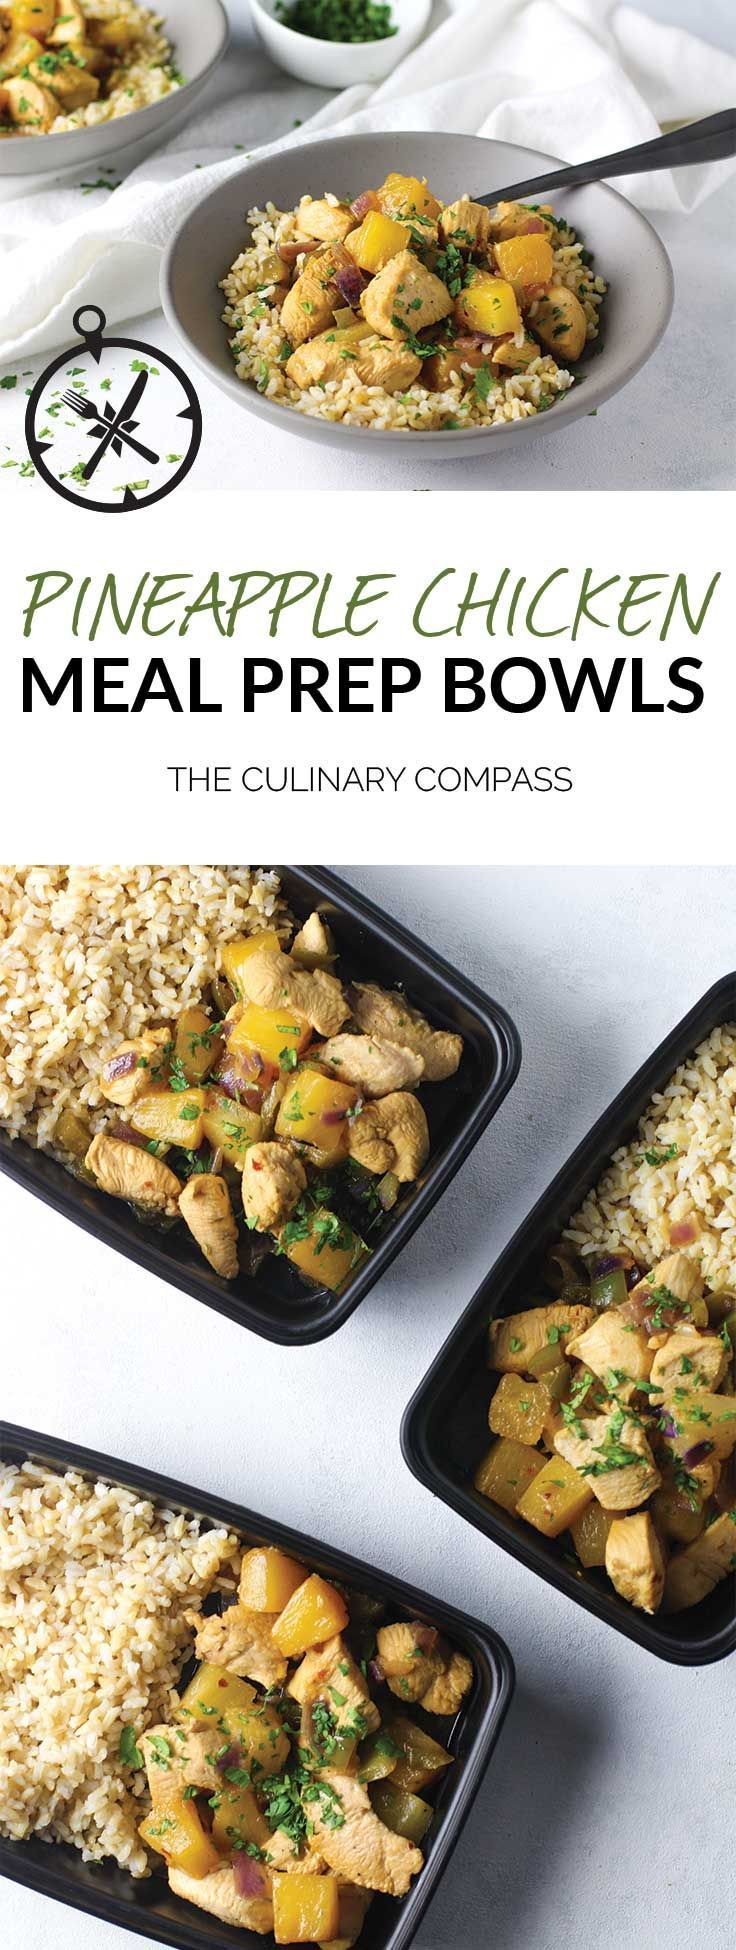 These Pineapple Chicken Meal Prep Bowls are flavorful and perfect to prep for the week! via /culinarycompass/